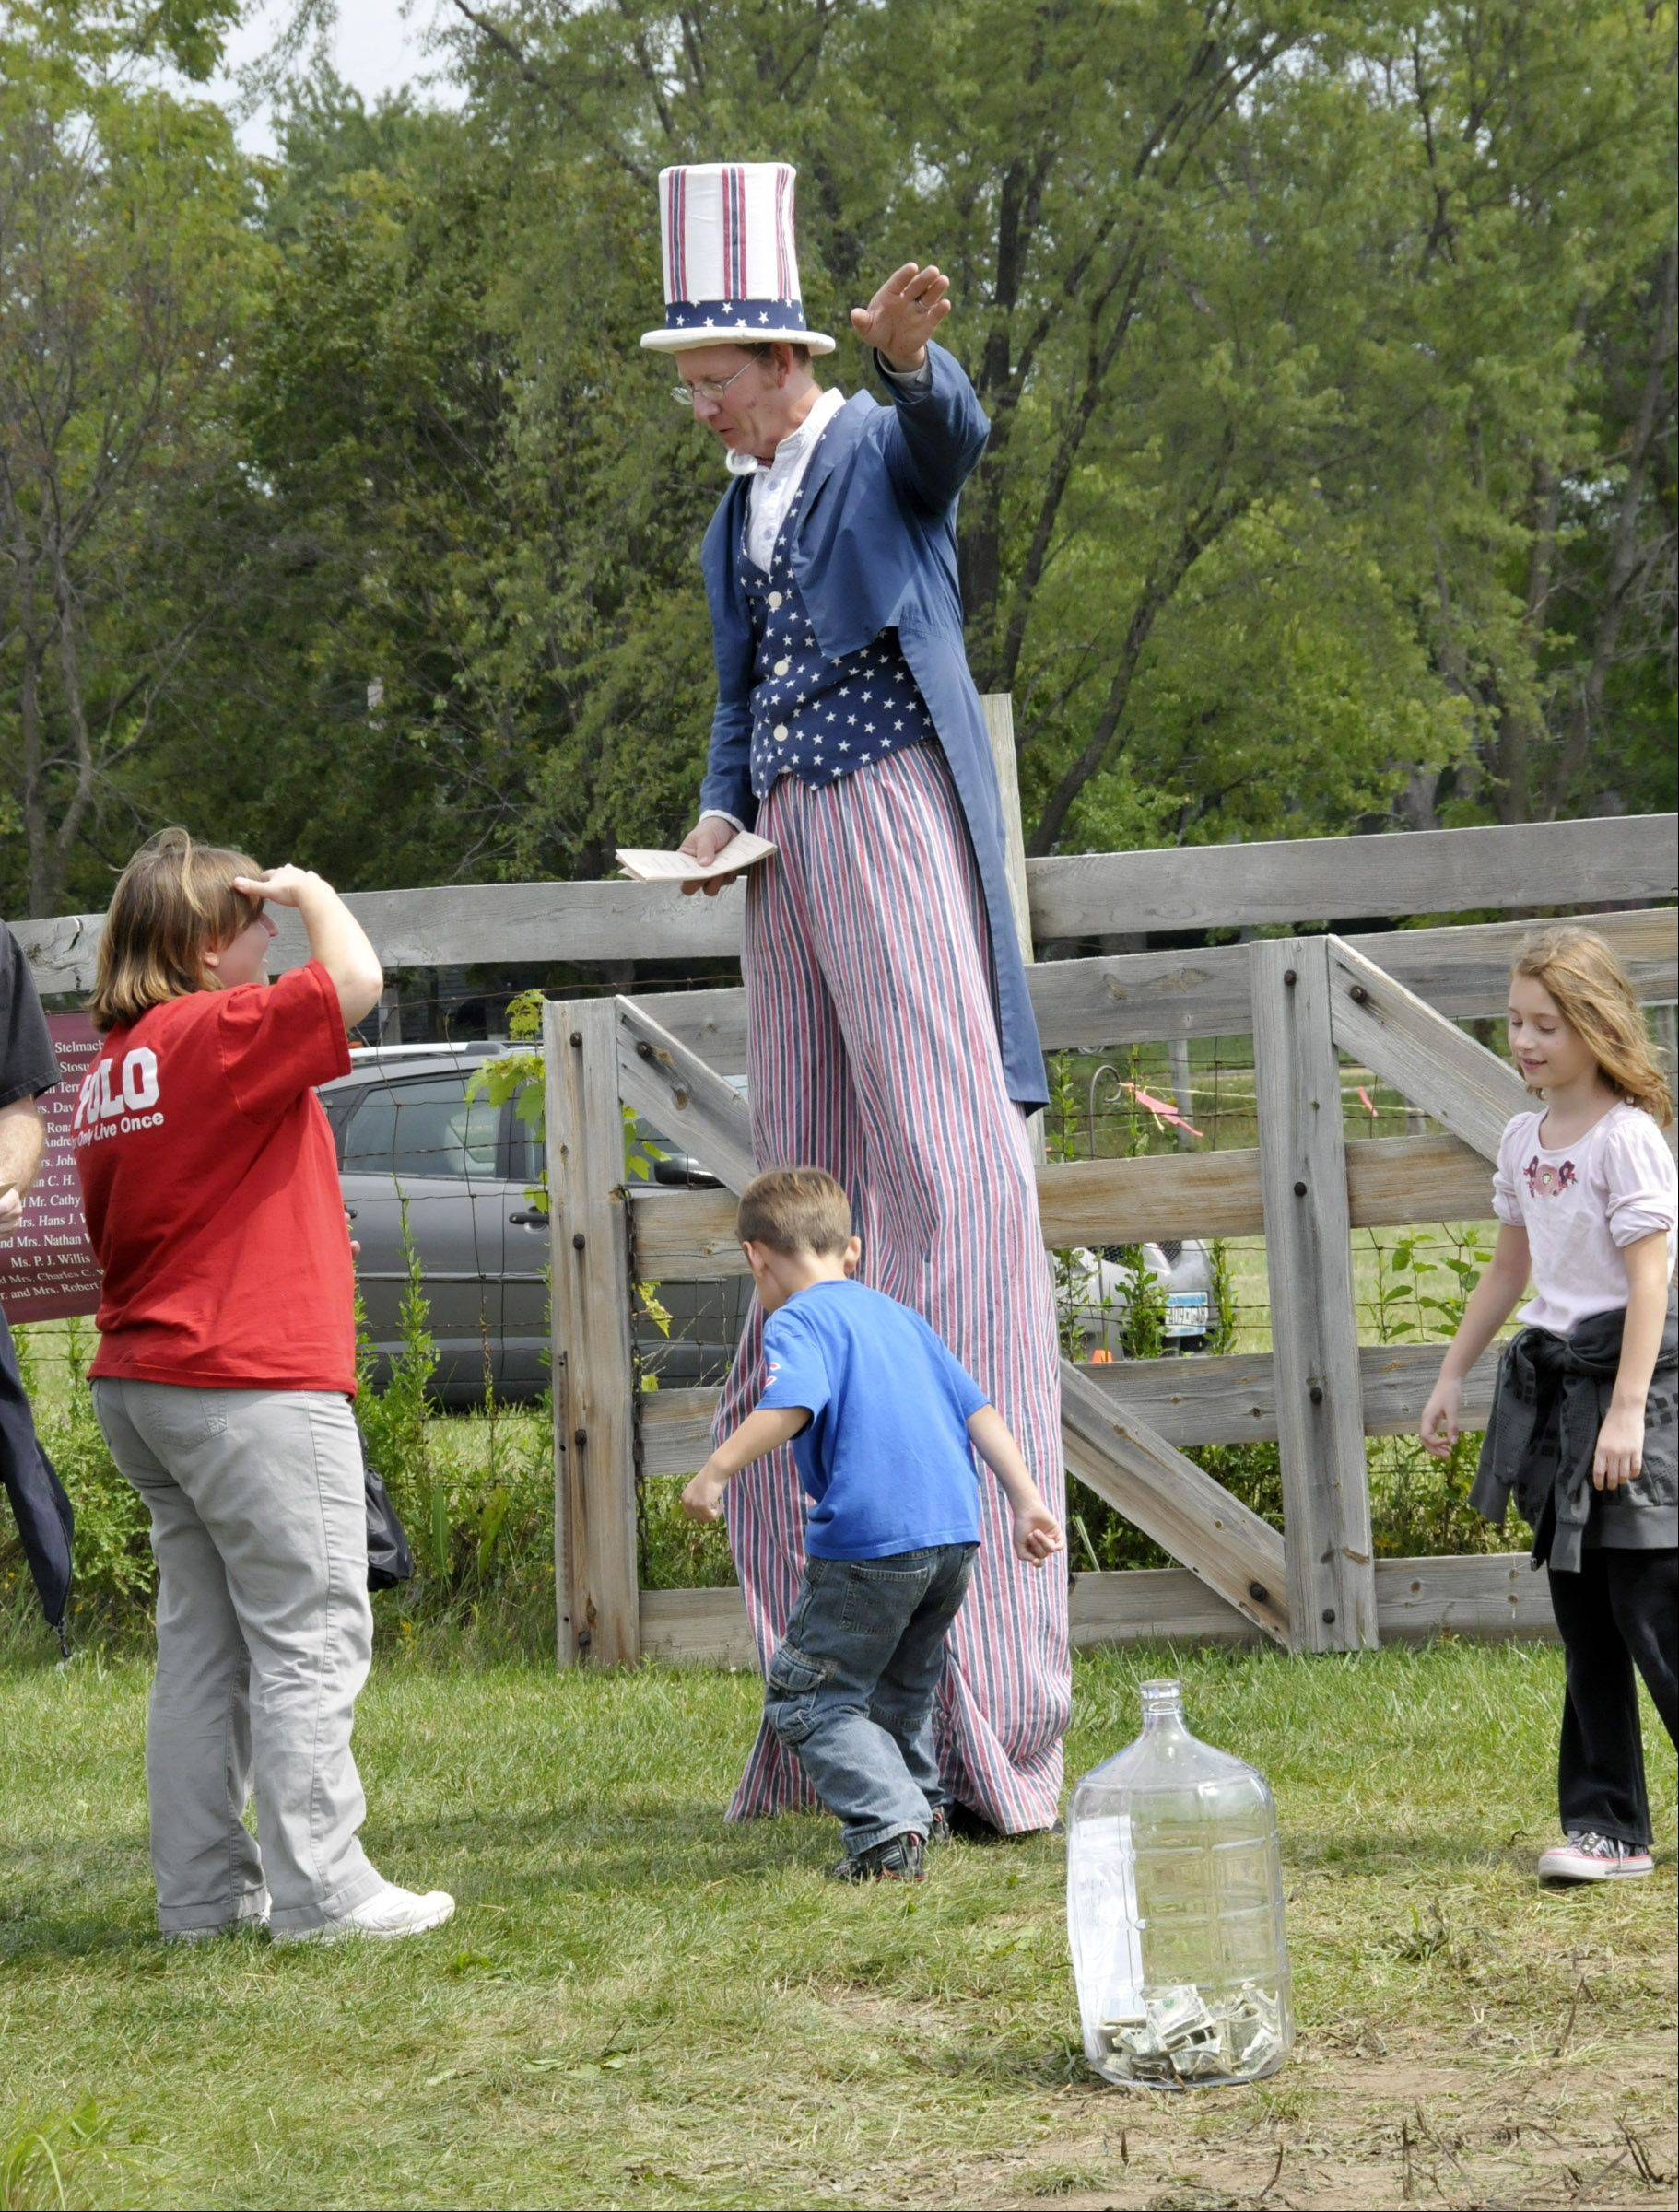 Keith McClow shows visitors around from a high vantage point during the DuPage County Forest Preserve District's old-fashioned country fair Sunday at Kline Creek Farm in West Chicago.